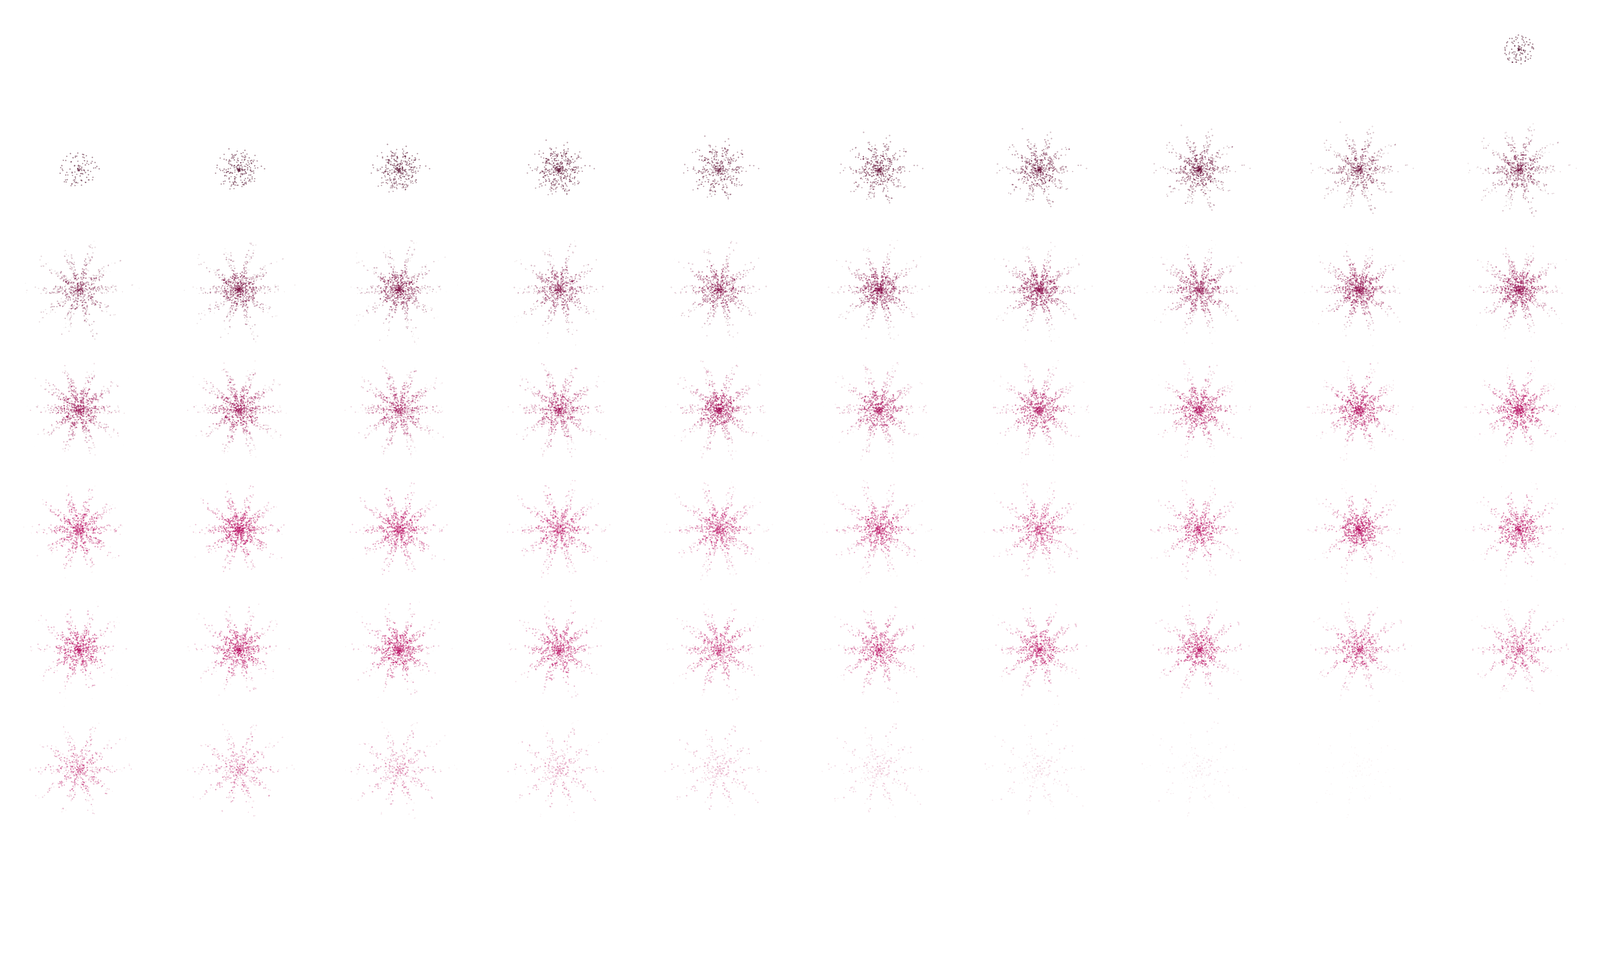 Fireworks sprite sheet png. Dm effects for games